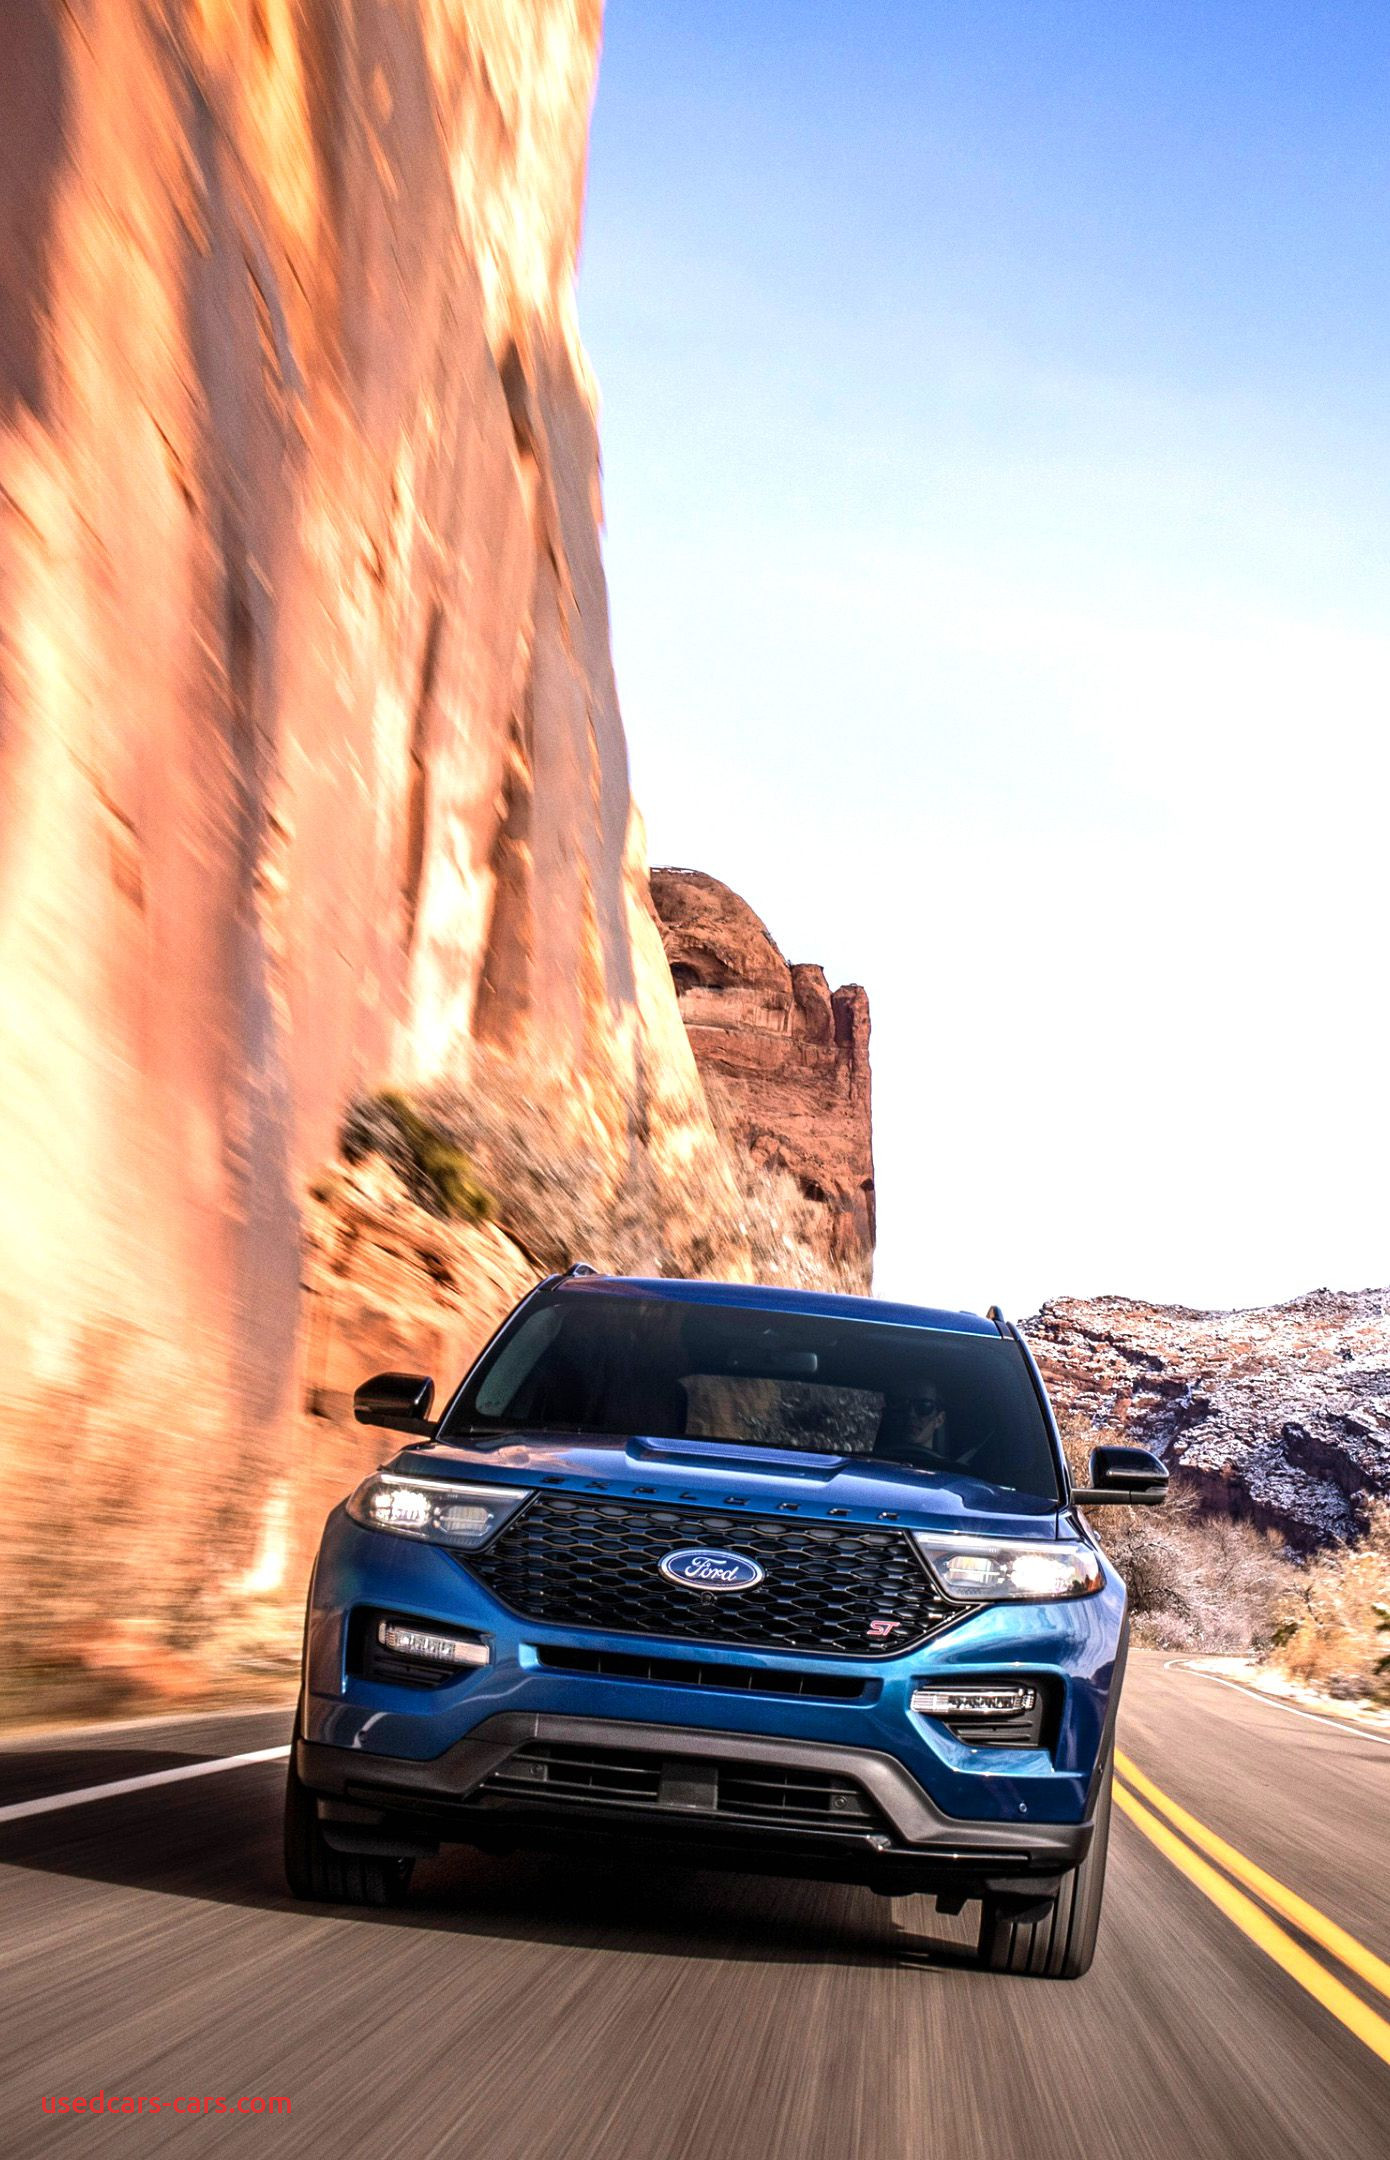 Ford 2020 Uk Awesome ford Explorer Suv 2020 Cars 2019 Detroit Auto Show